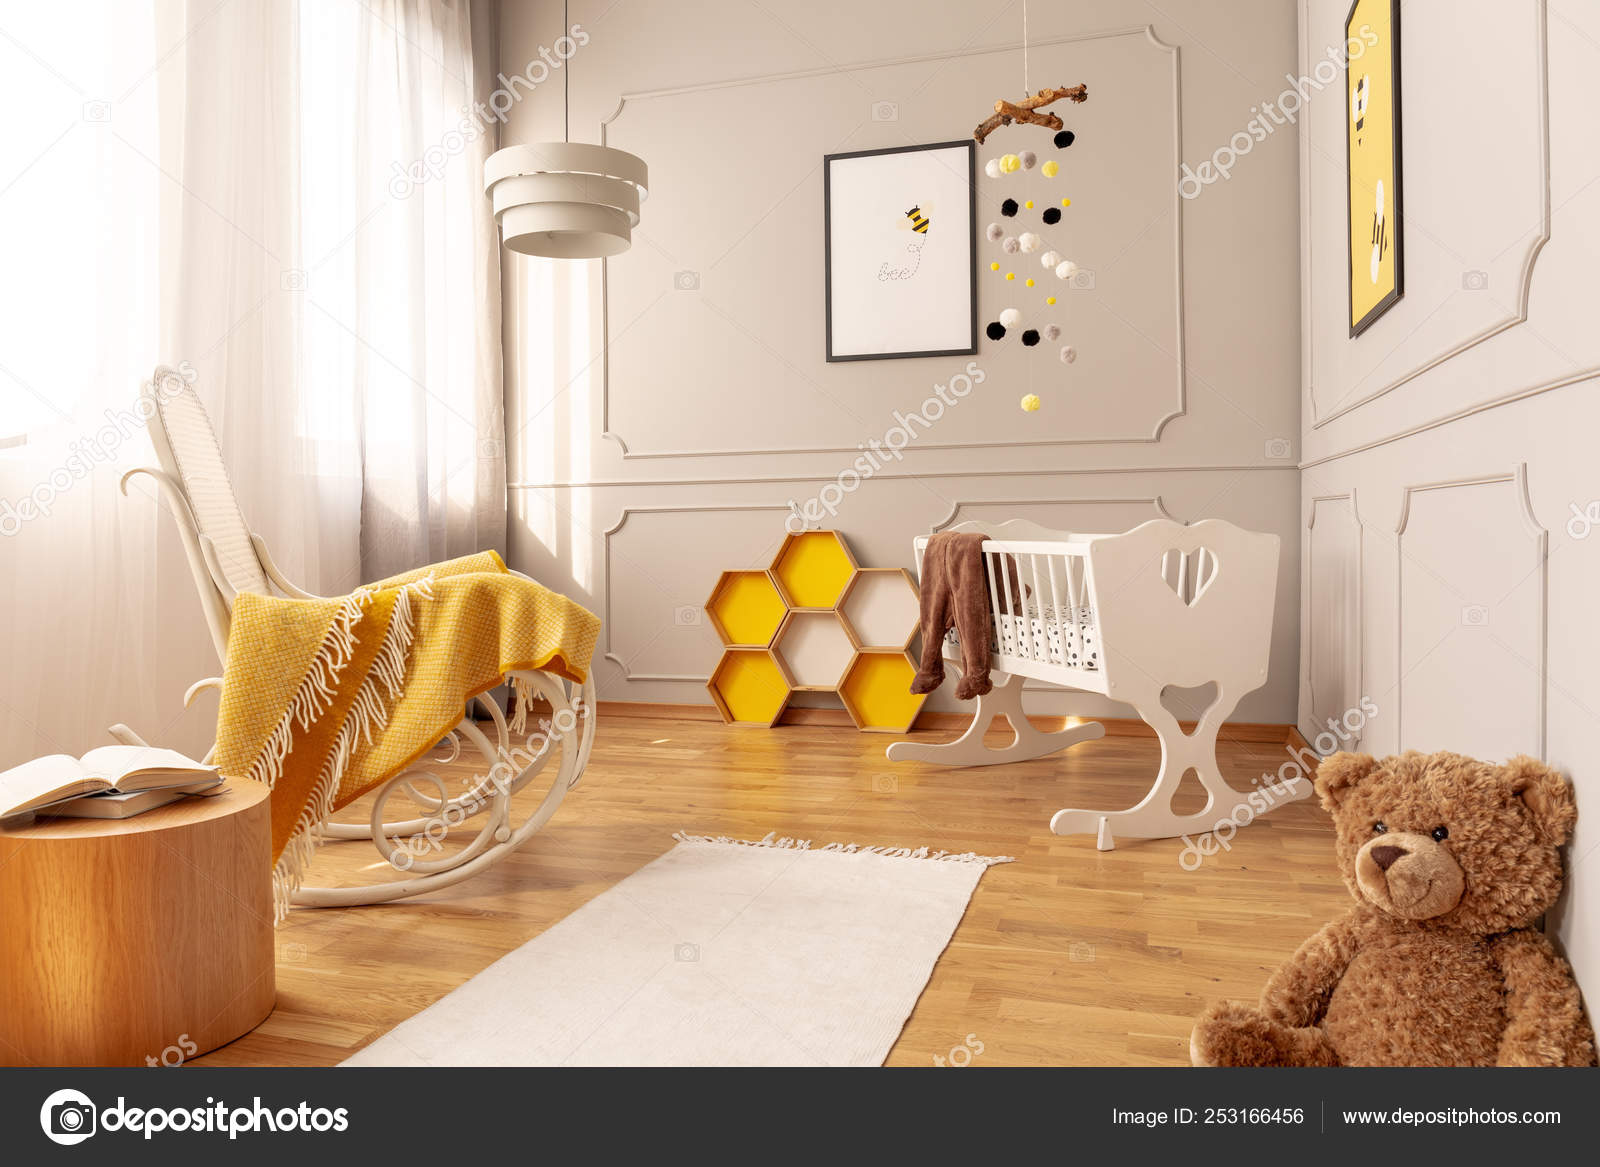 Picture of: Yellow Blanket On White Wooden Rocking Chair In Spacious Baby Bedroom With Teddy Bear And Rug On The Floor Stock Photo C Photographee Eu 253166456